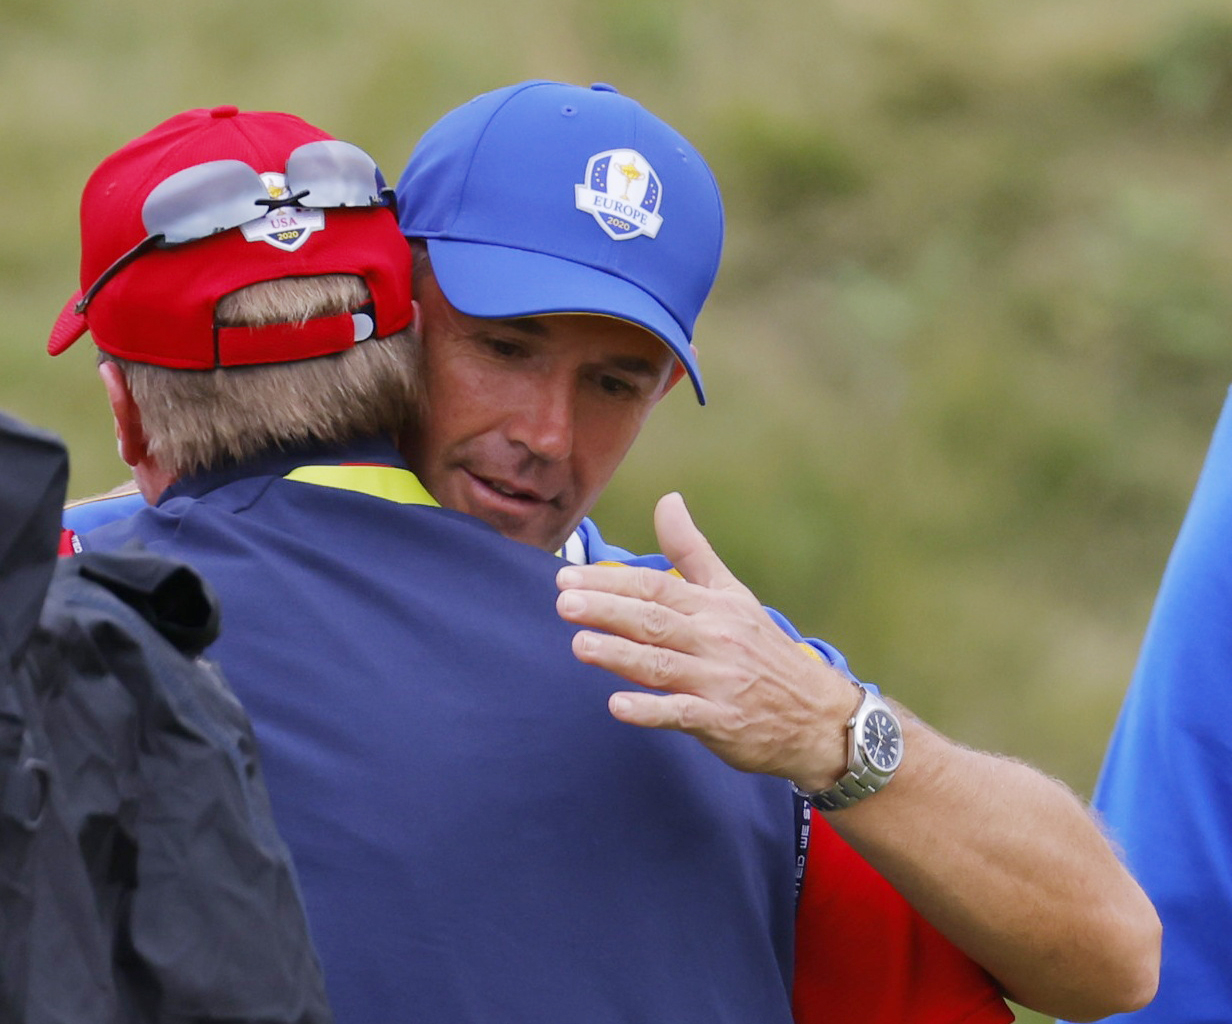 Golf - The 2020 Ryder Cup - Whistling Straits, Sheboygan, Wisconsin, U.S. - September 26, 2021 Team Europe captain Padraig Harrington congratulates Team USA captain Steve Stricker on the 18th hole after Team USA win the Ryder Cup REUTERS/Mike Segar/File photo